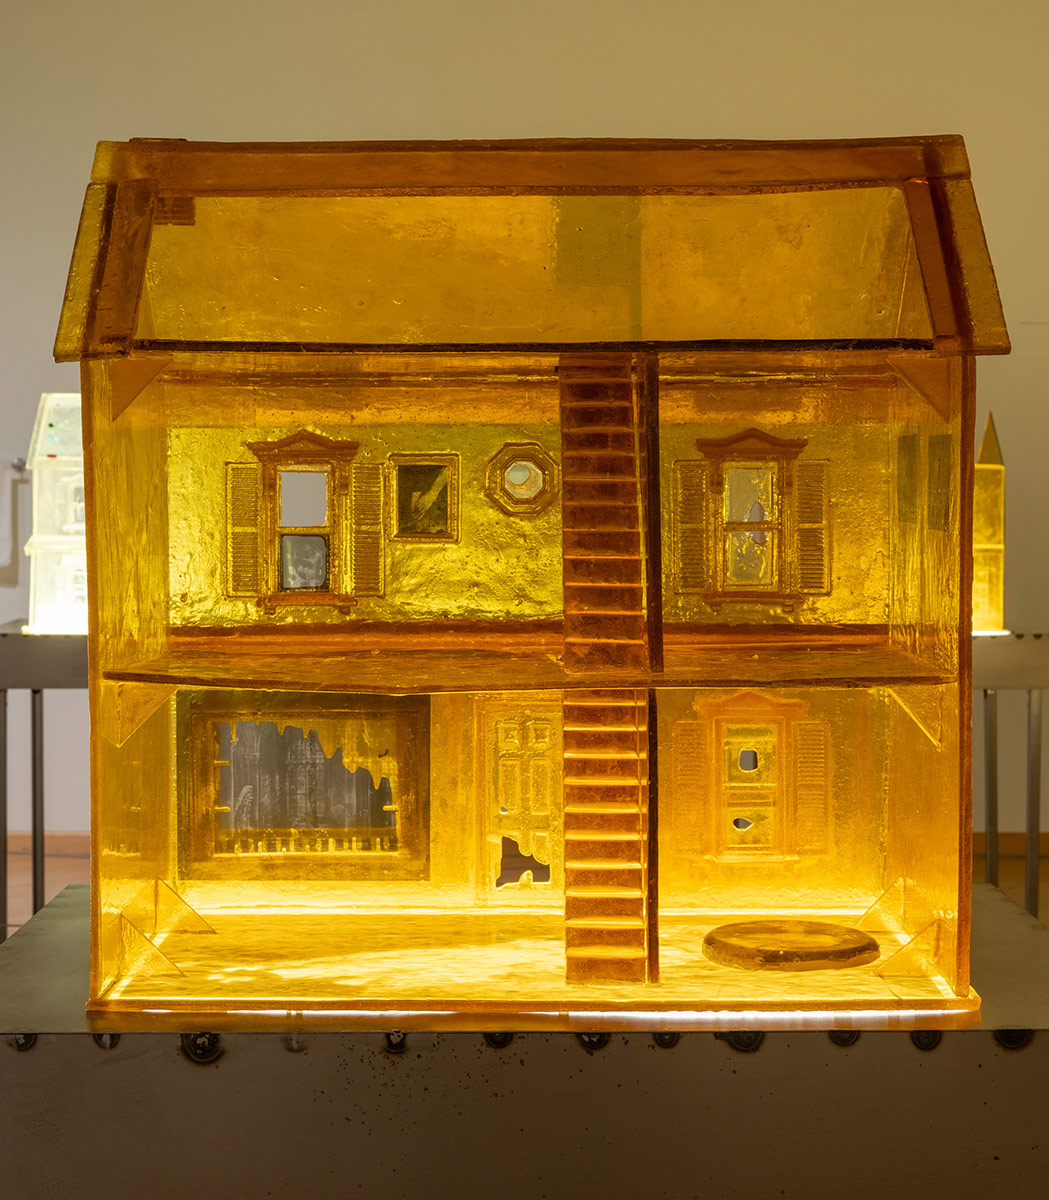 "Installation view of ""Sula Bermúdez-Silverman: Neither Fish, Flesh, nor Fowl"" at CAAM featuring a yellow dollhouse made of sugar. 